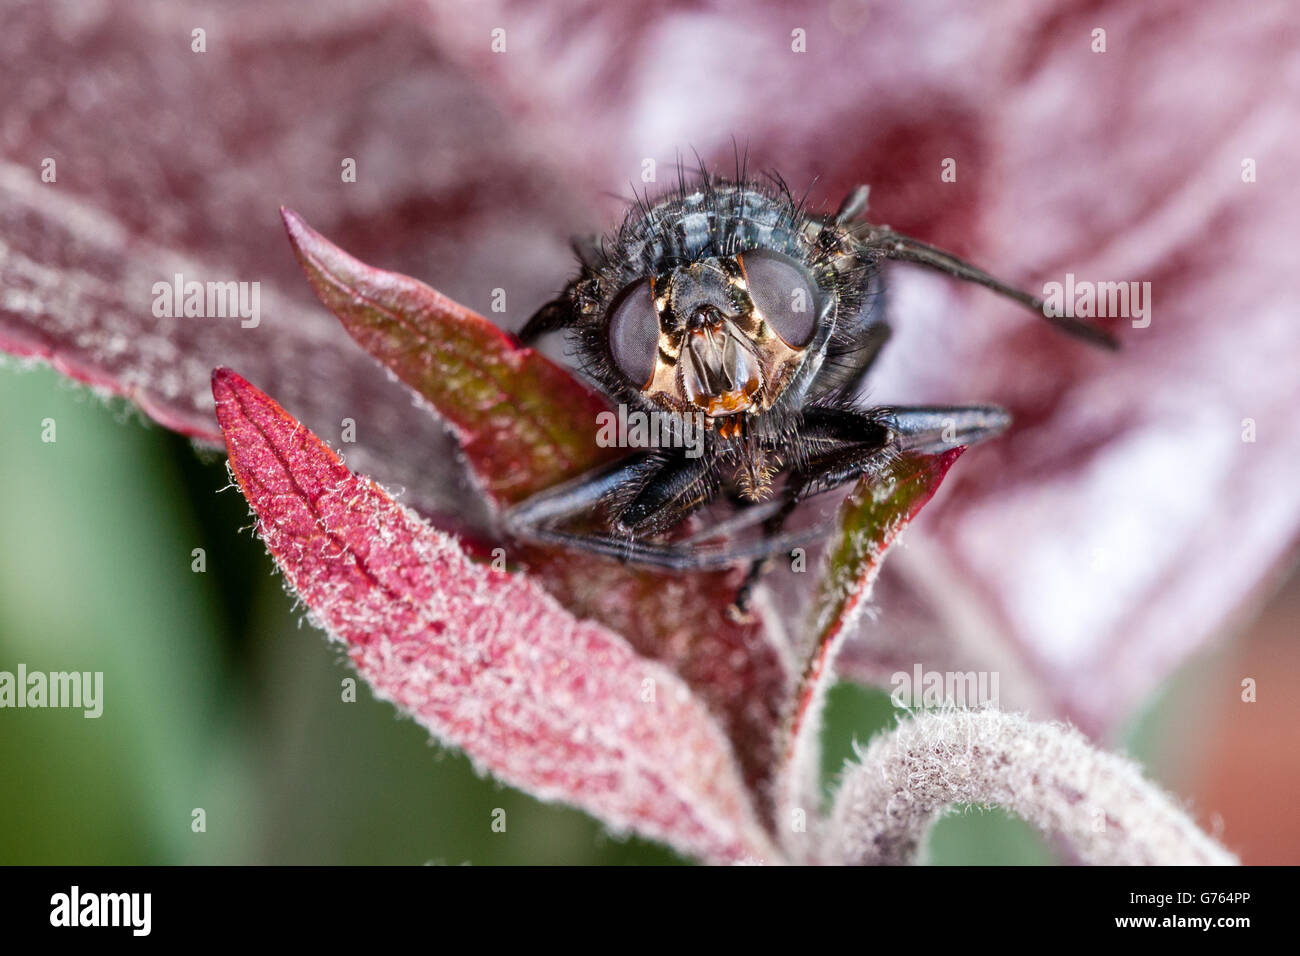 Blue Bottle Fly Features